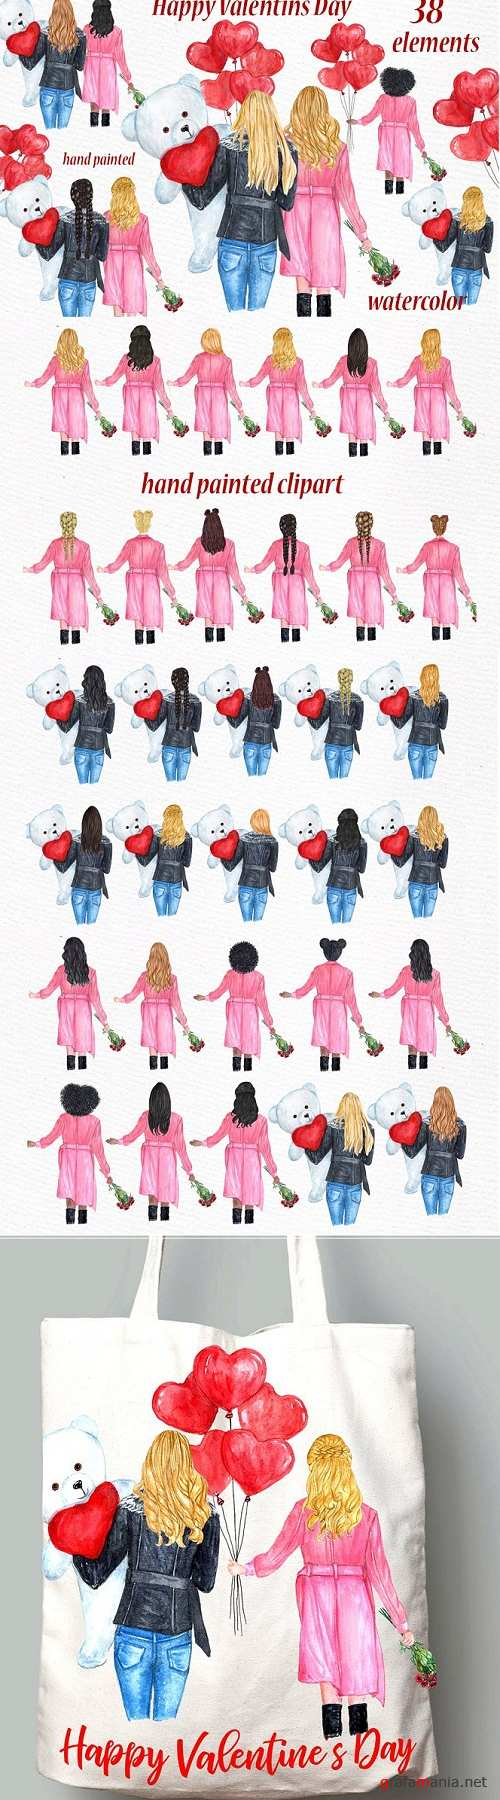 Valentines Day Girls Clipart - 3370873